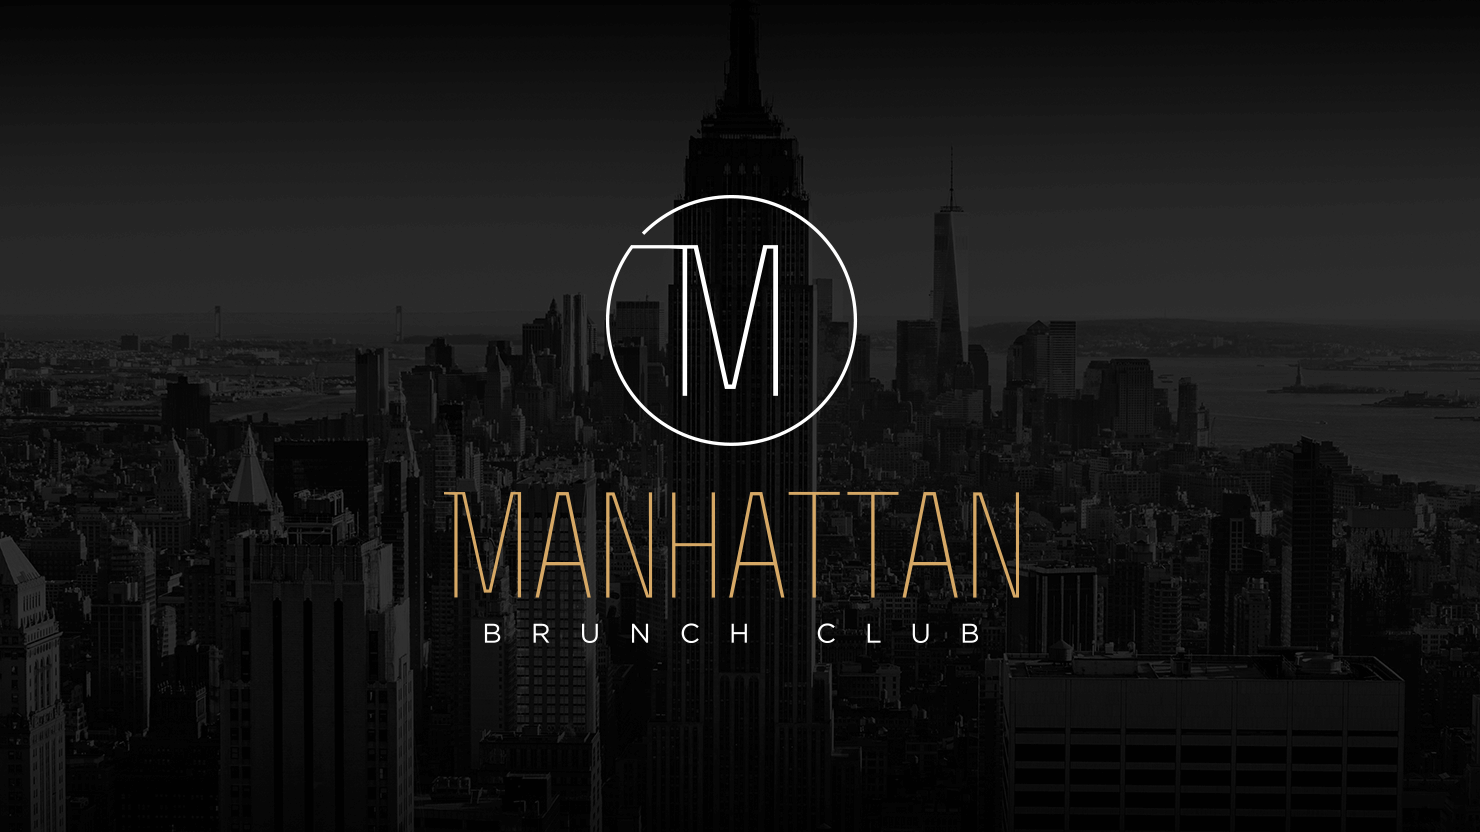 Logo design and brand identity for Manhattan Brunch Club skyline bar resorts world Birmingham